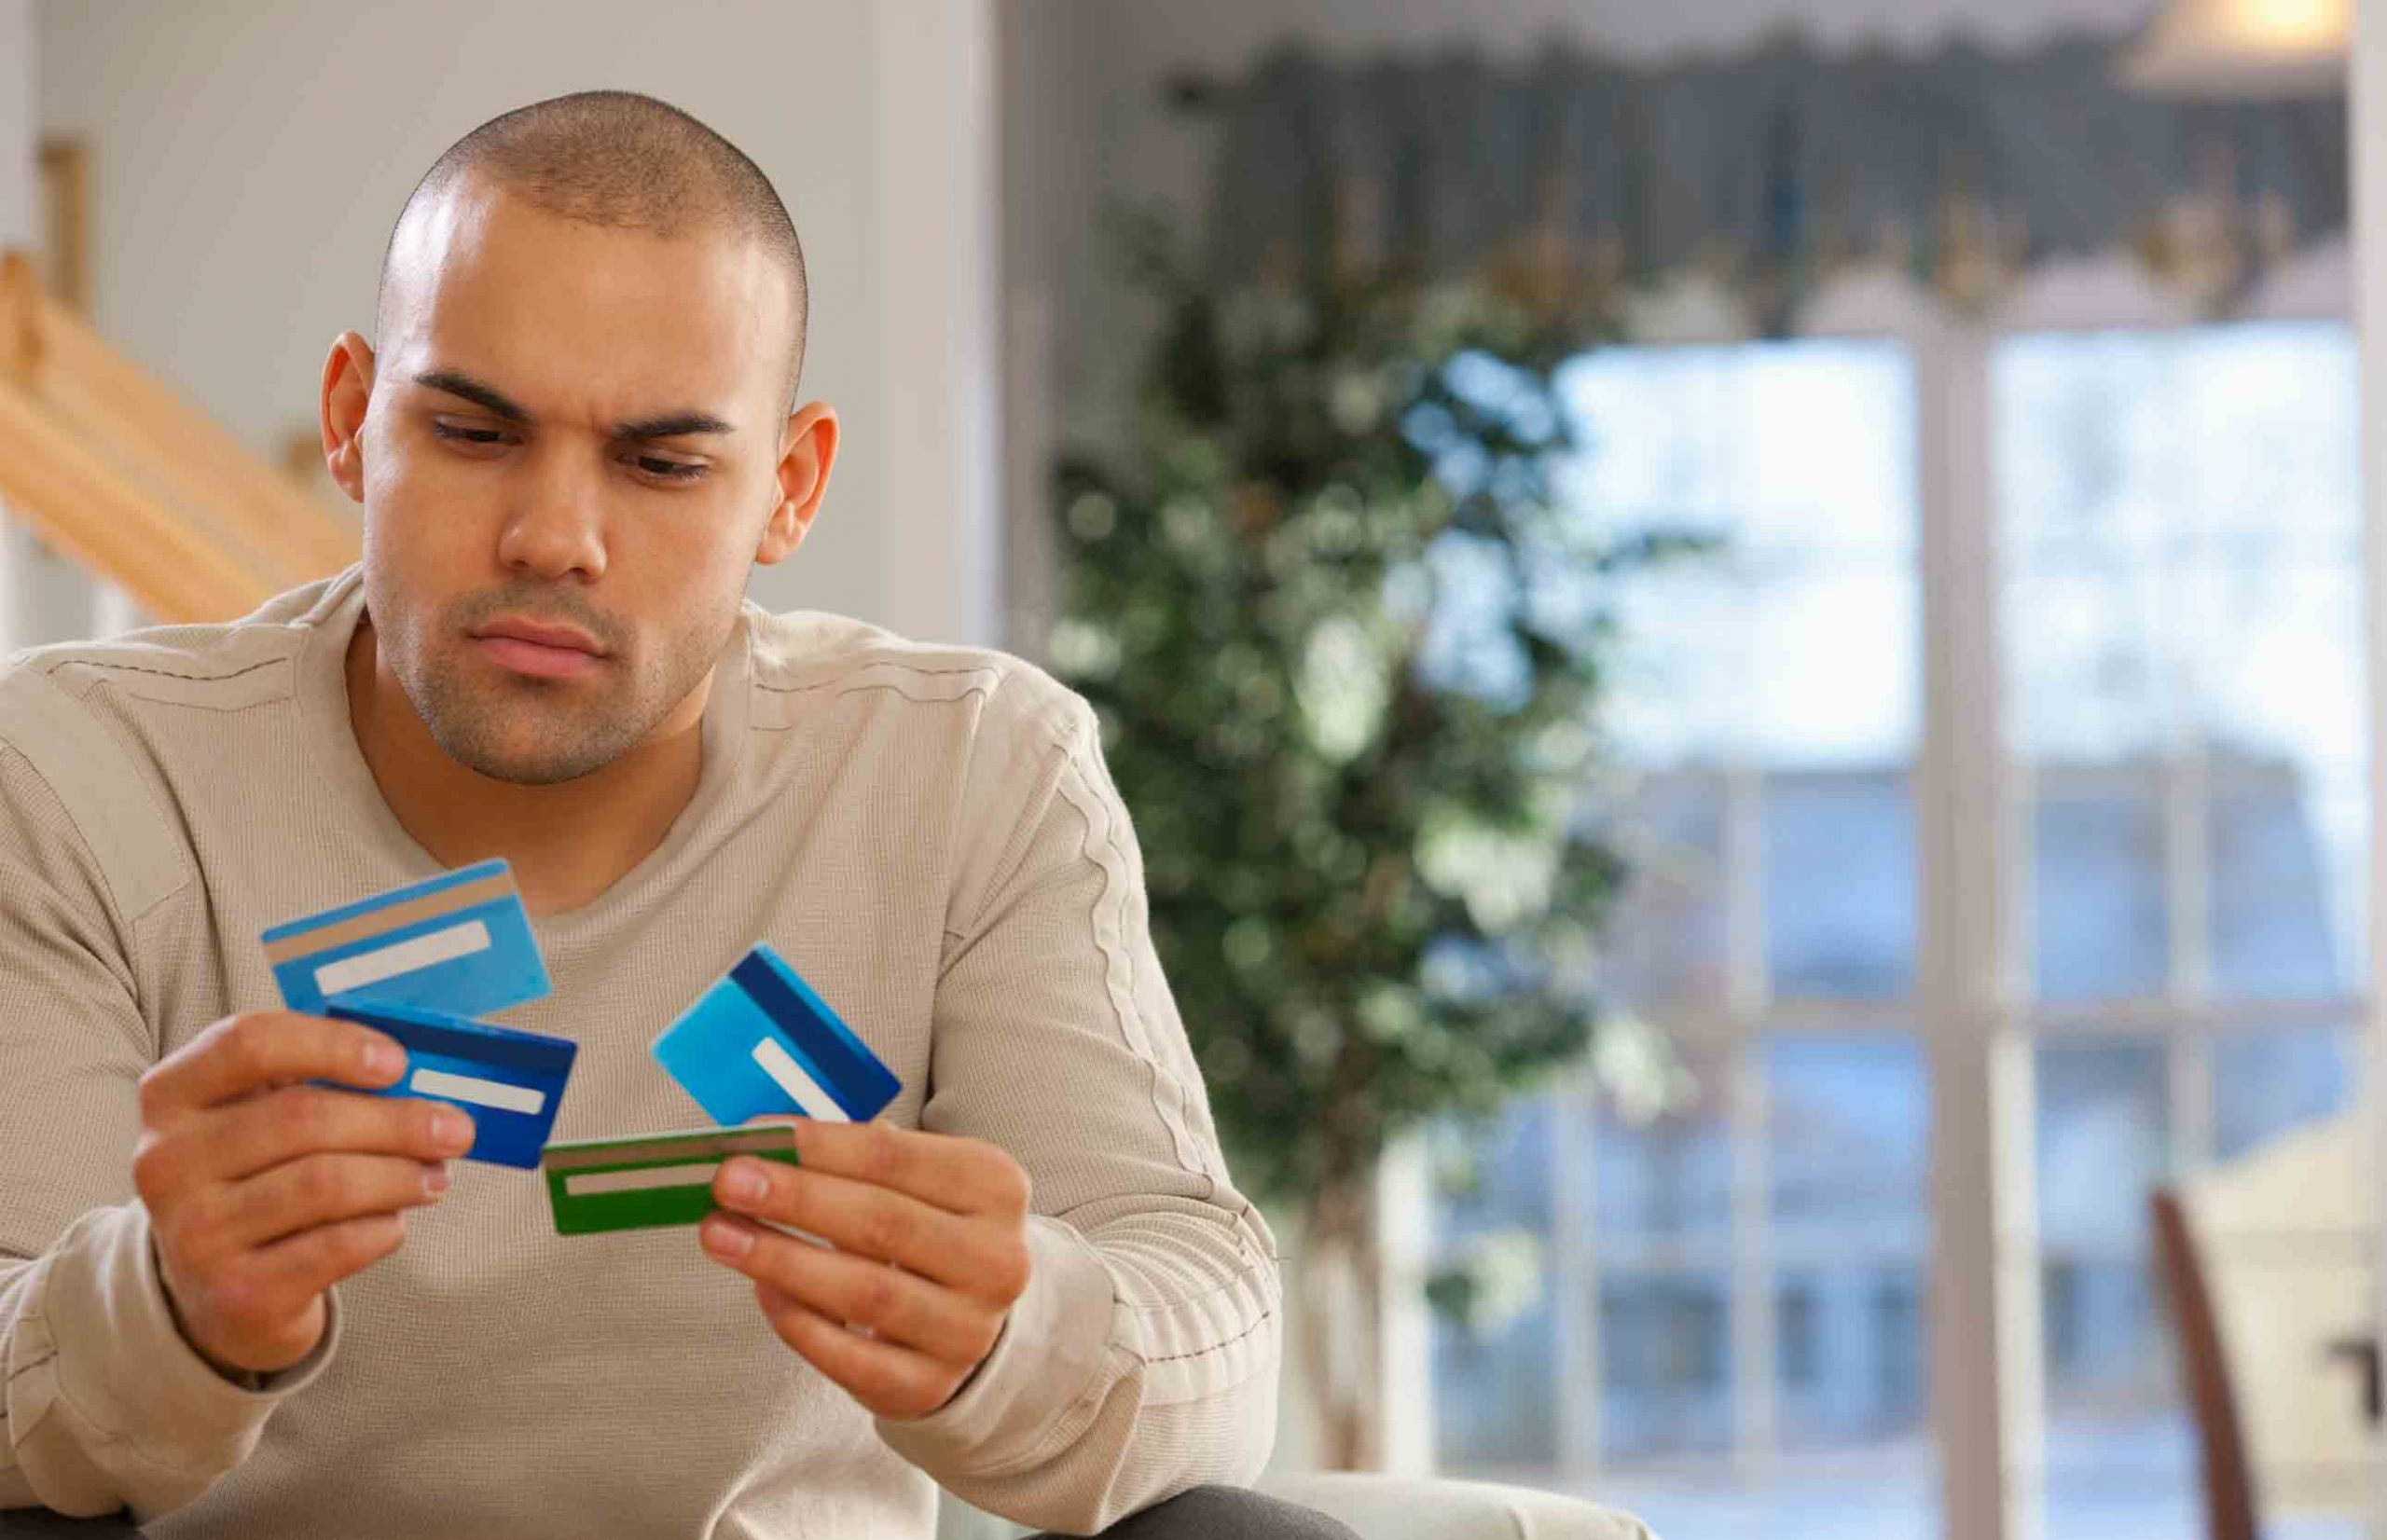 Credit Card Appealing online date